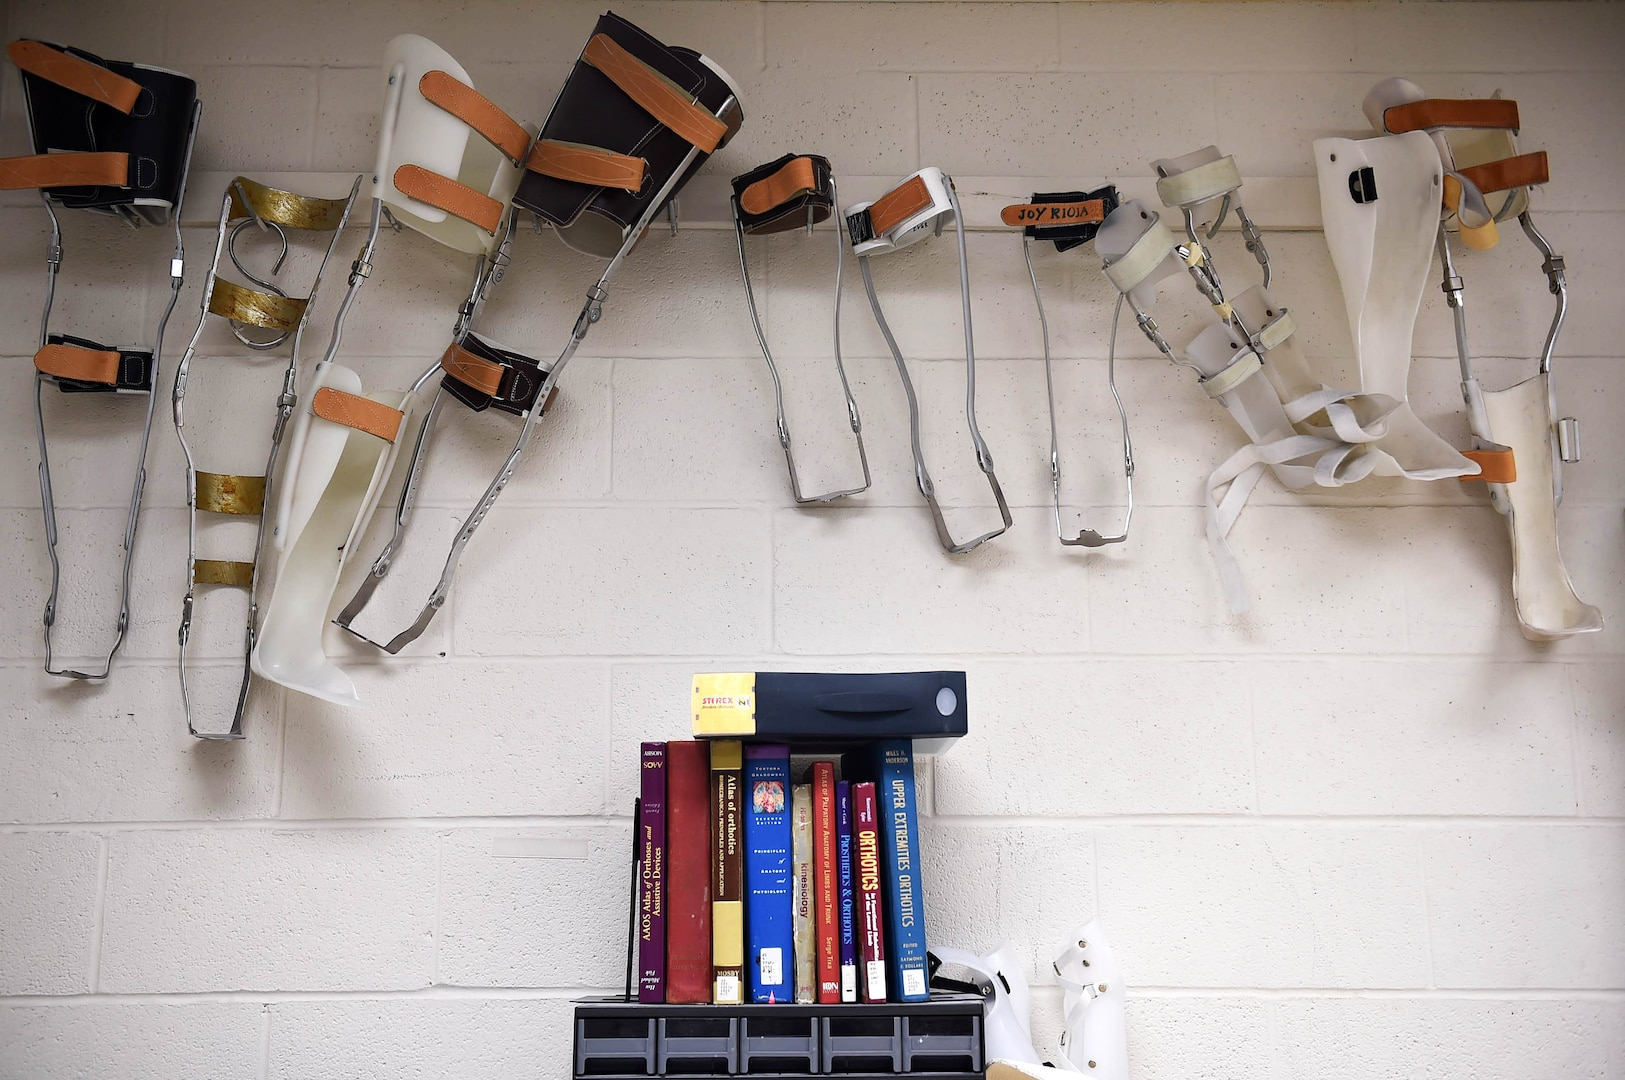 Leg braces created by former orthotics training students are displayed in the brace shop at the Wilford Hall Ambulatory Surgical Center, Joint Base San Antonio-Lackland, Texas, Aug. 24, 2016.(U.S. Air Force photo/Staff Sgt. Jerilyn Quintanilla)